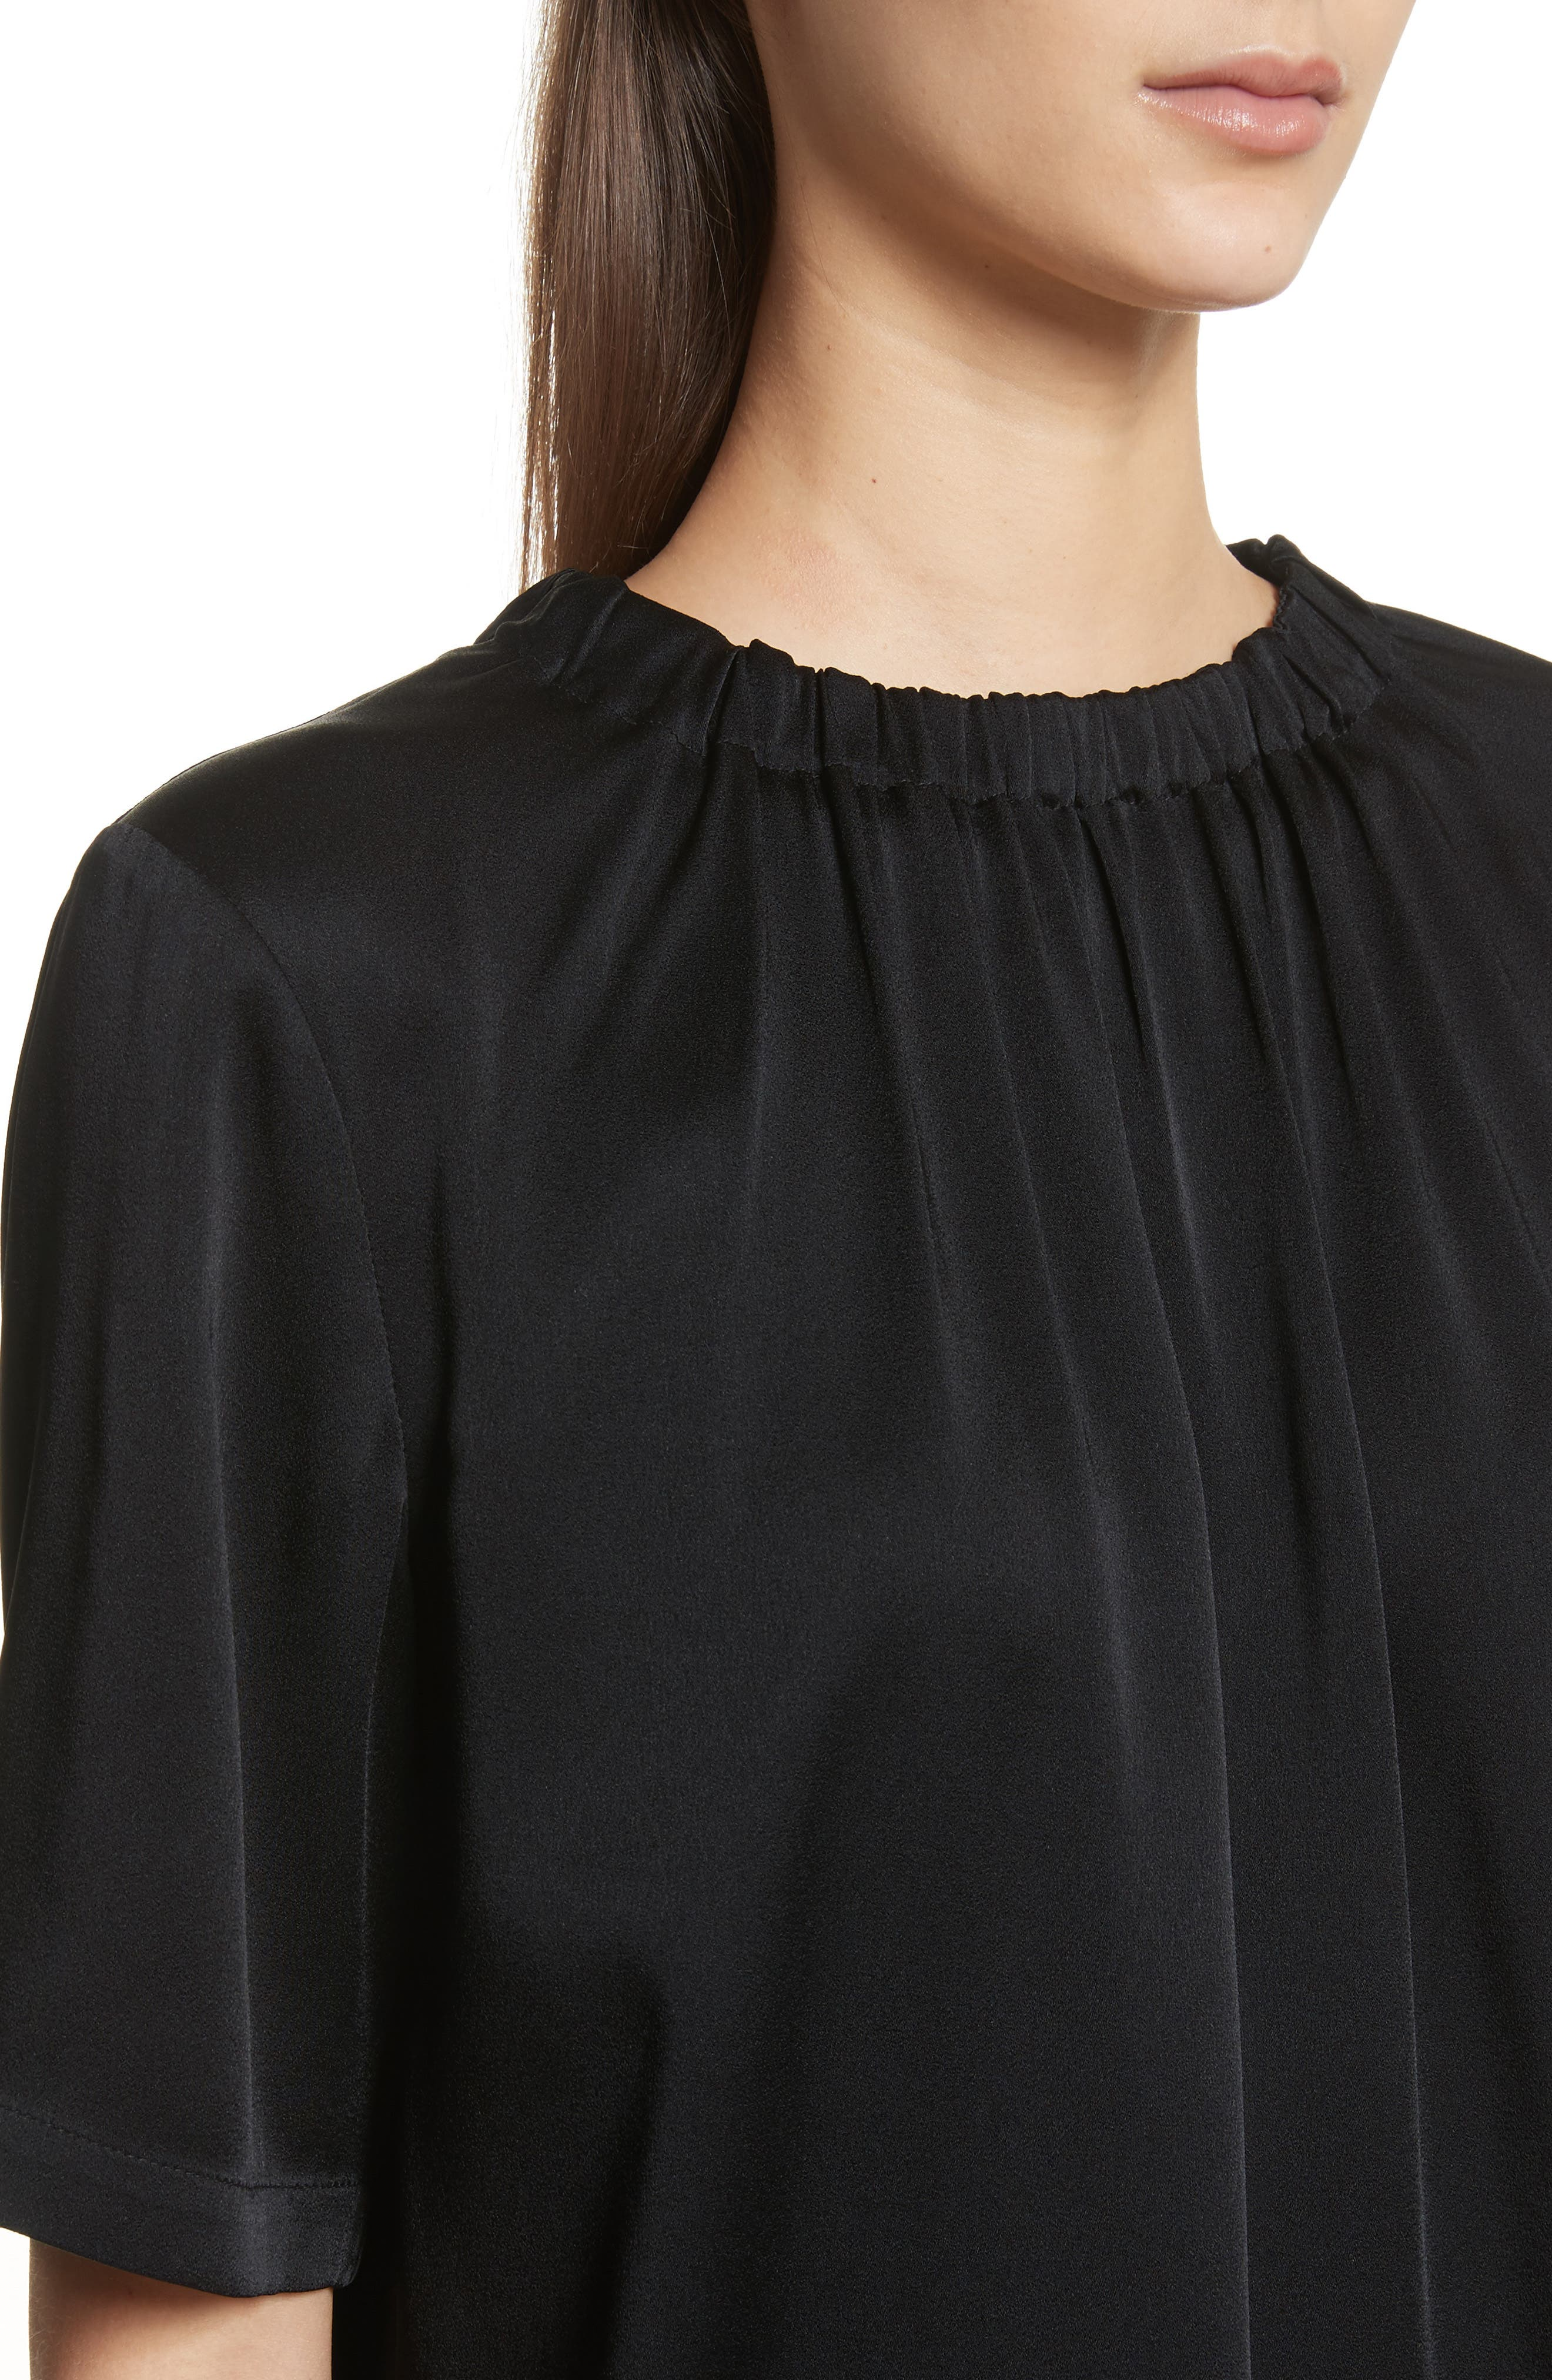 Gathered Neck Short Sleeve Top,                             Alternate thumbnail 4, color,